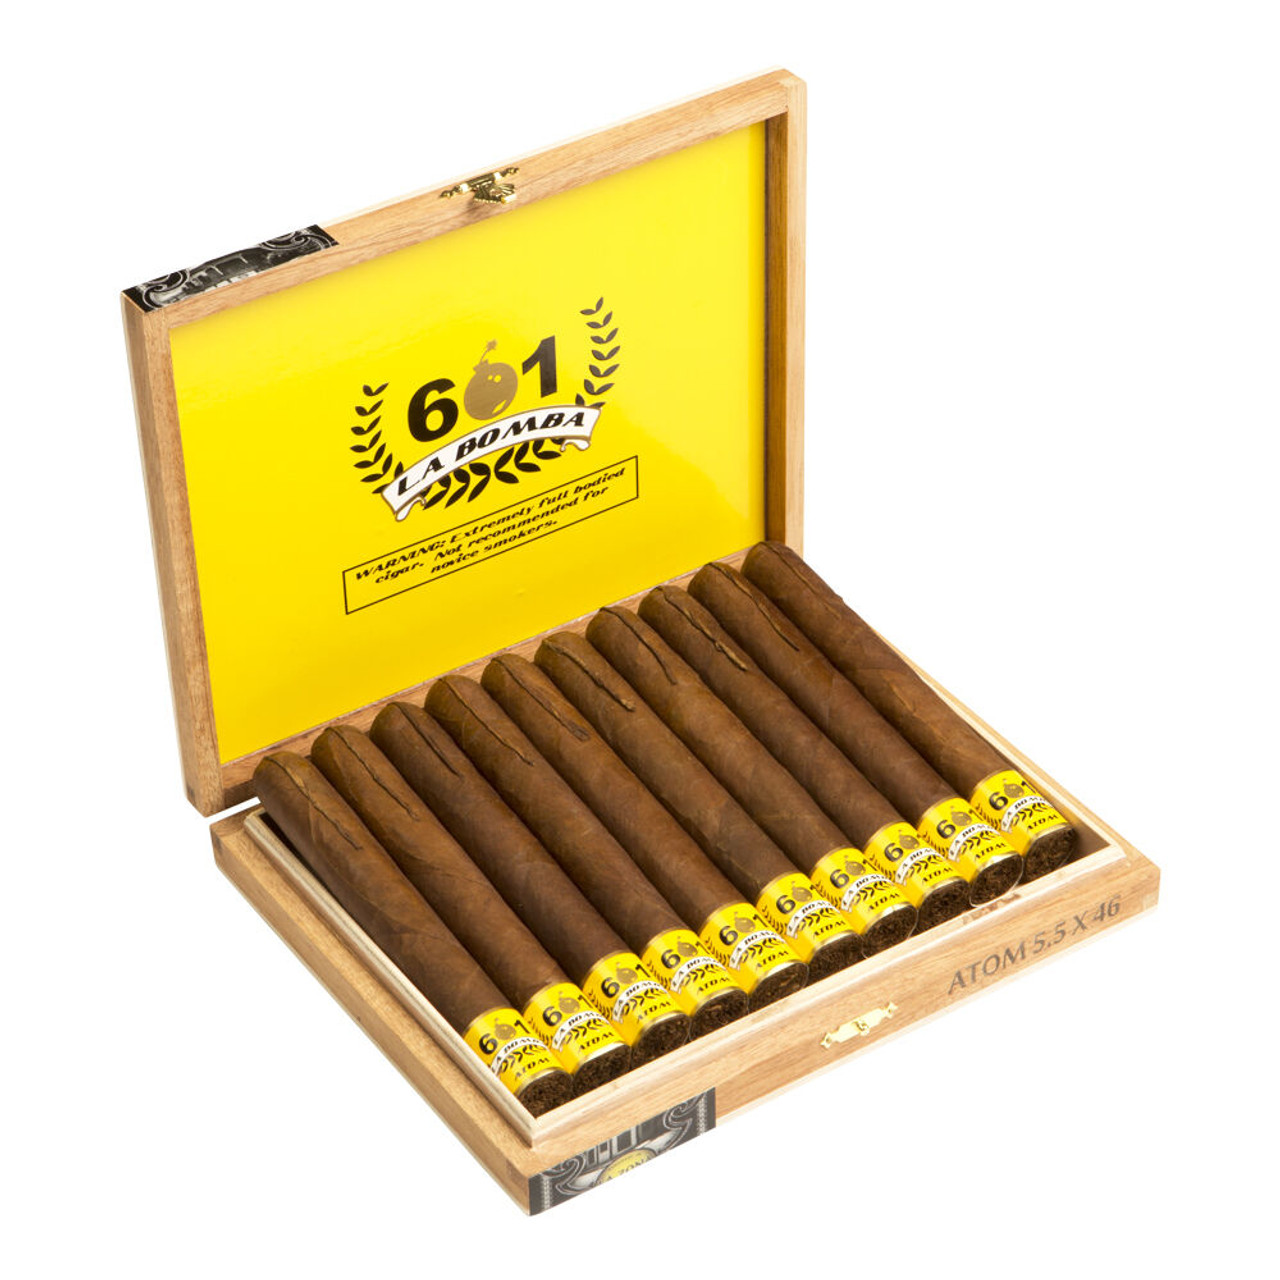 601 La Bomba Atomic Cigars - 6 x 60 (Box of 10)